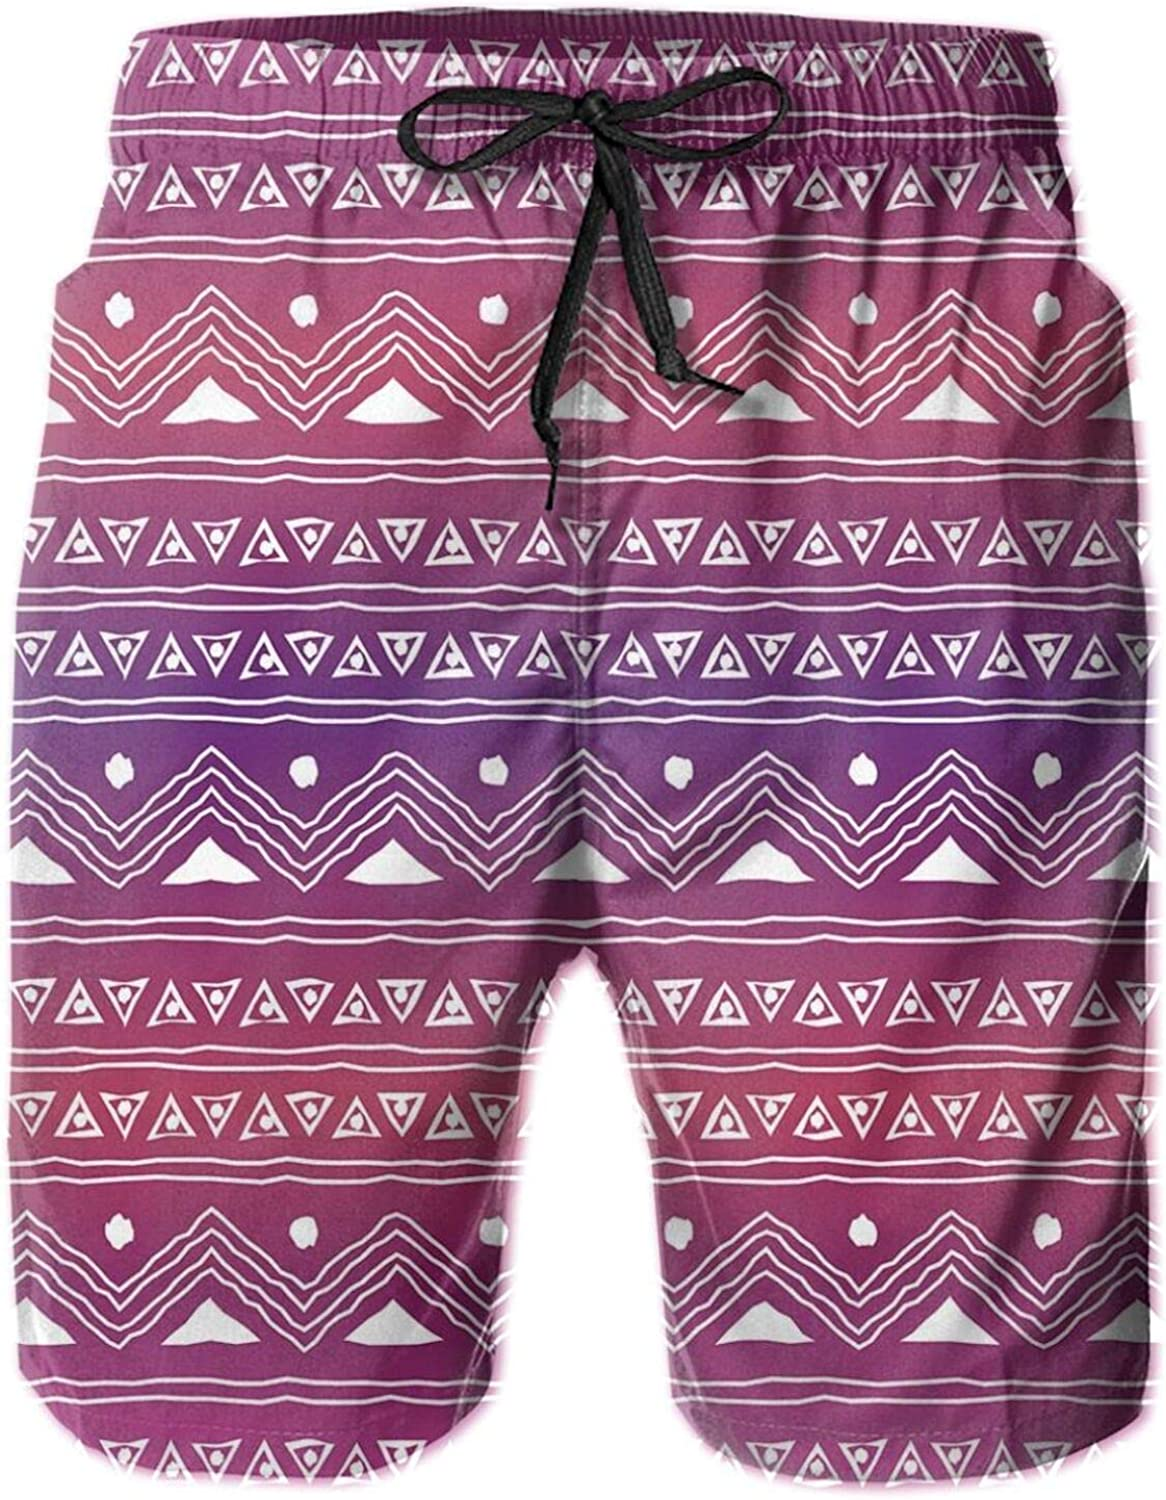 Geometric Pattern with Ethnic Motifs and Ombre Backdrop Primitive Culture Doodle Art Swimming Trunks for Men Beach Shorts Casual Style,XL